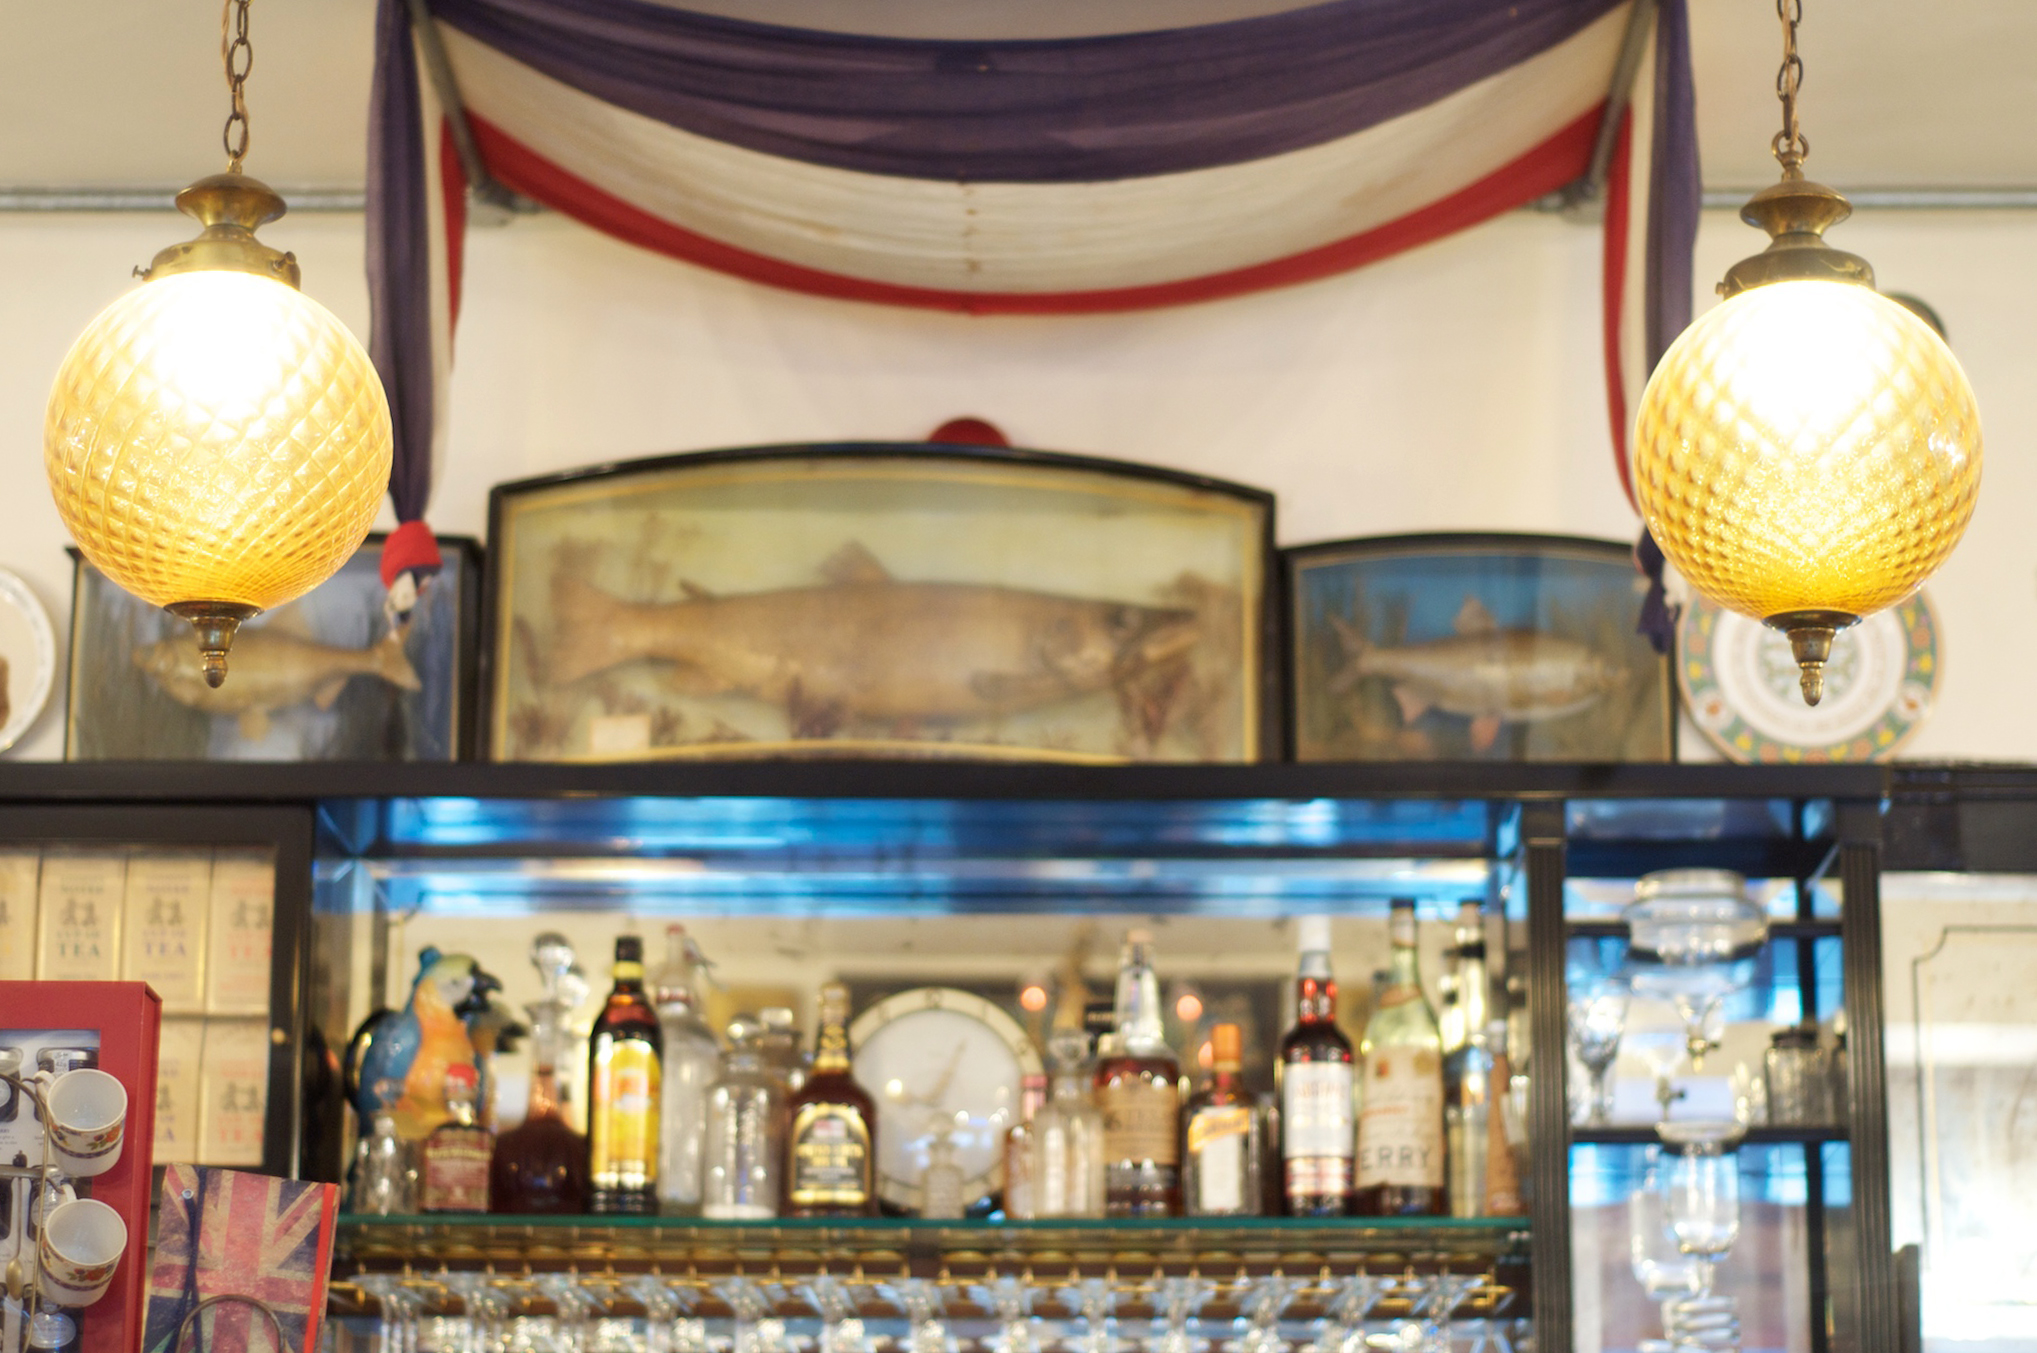 The dreamscape at Terry's: prize fish,a ceramic parrot and a French flag